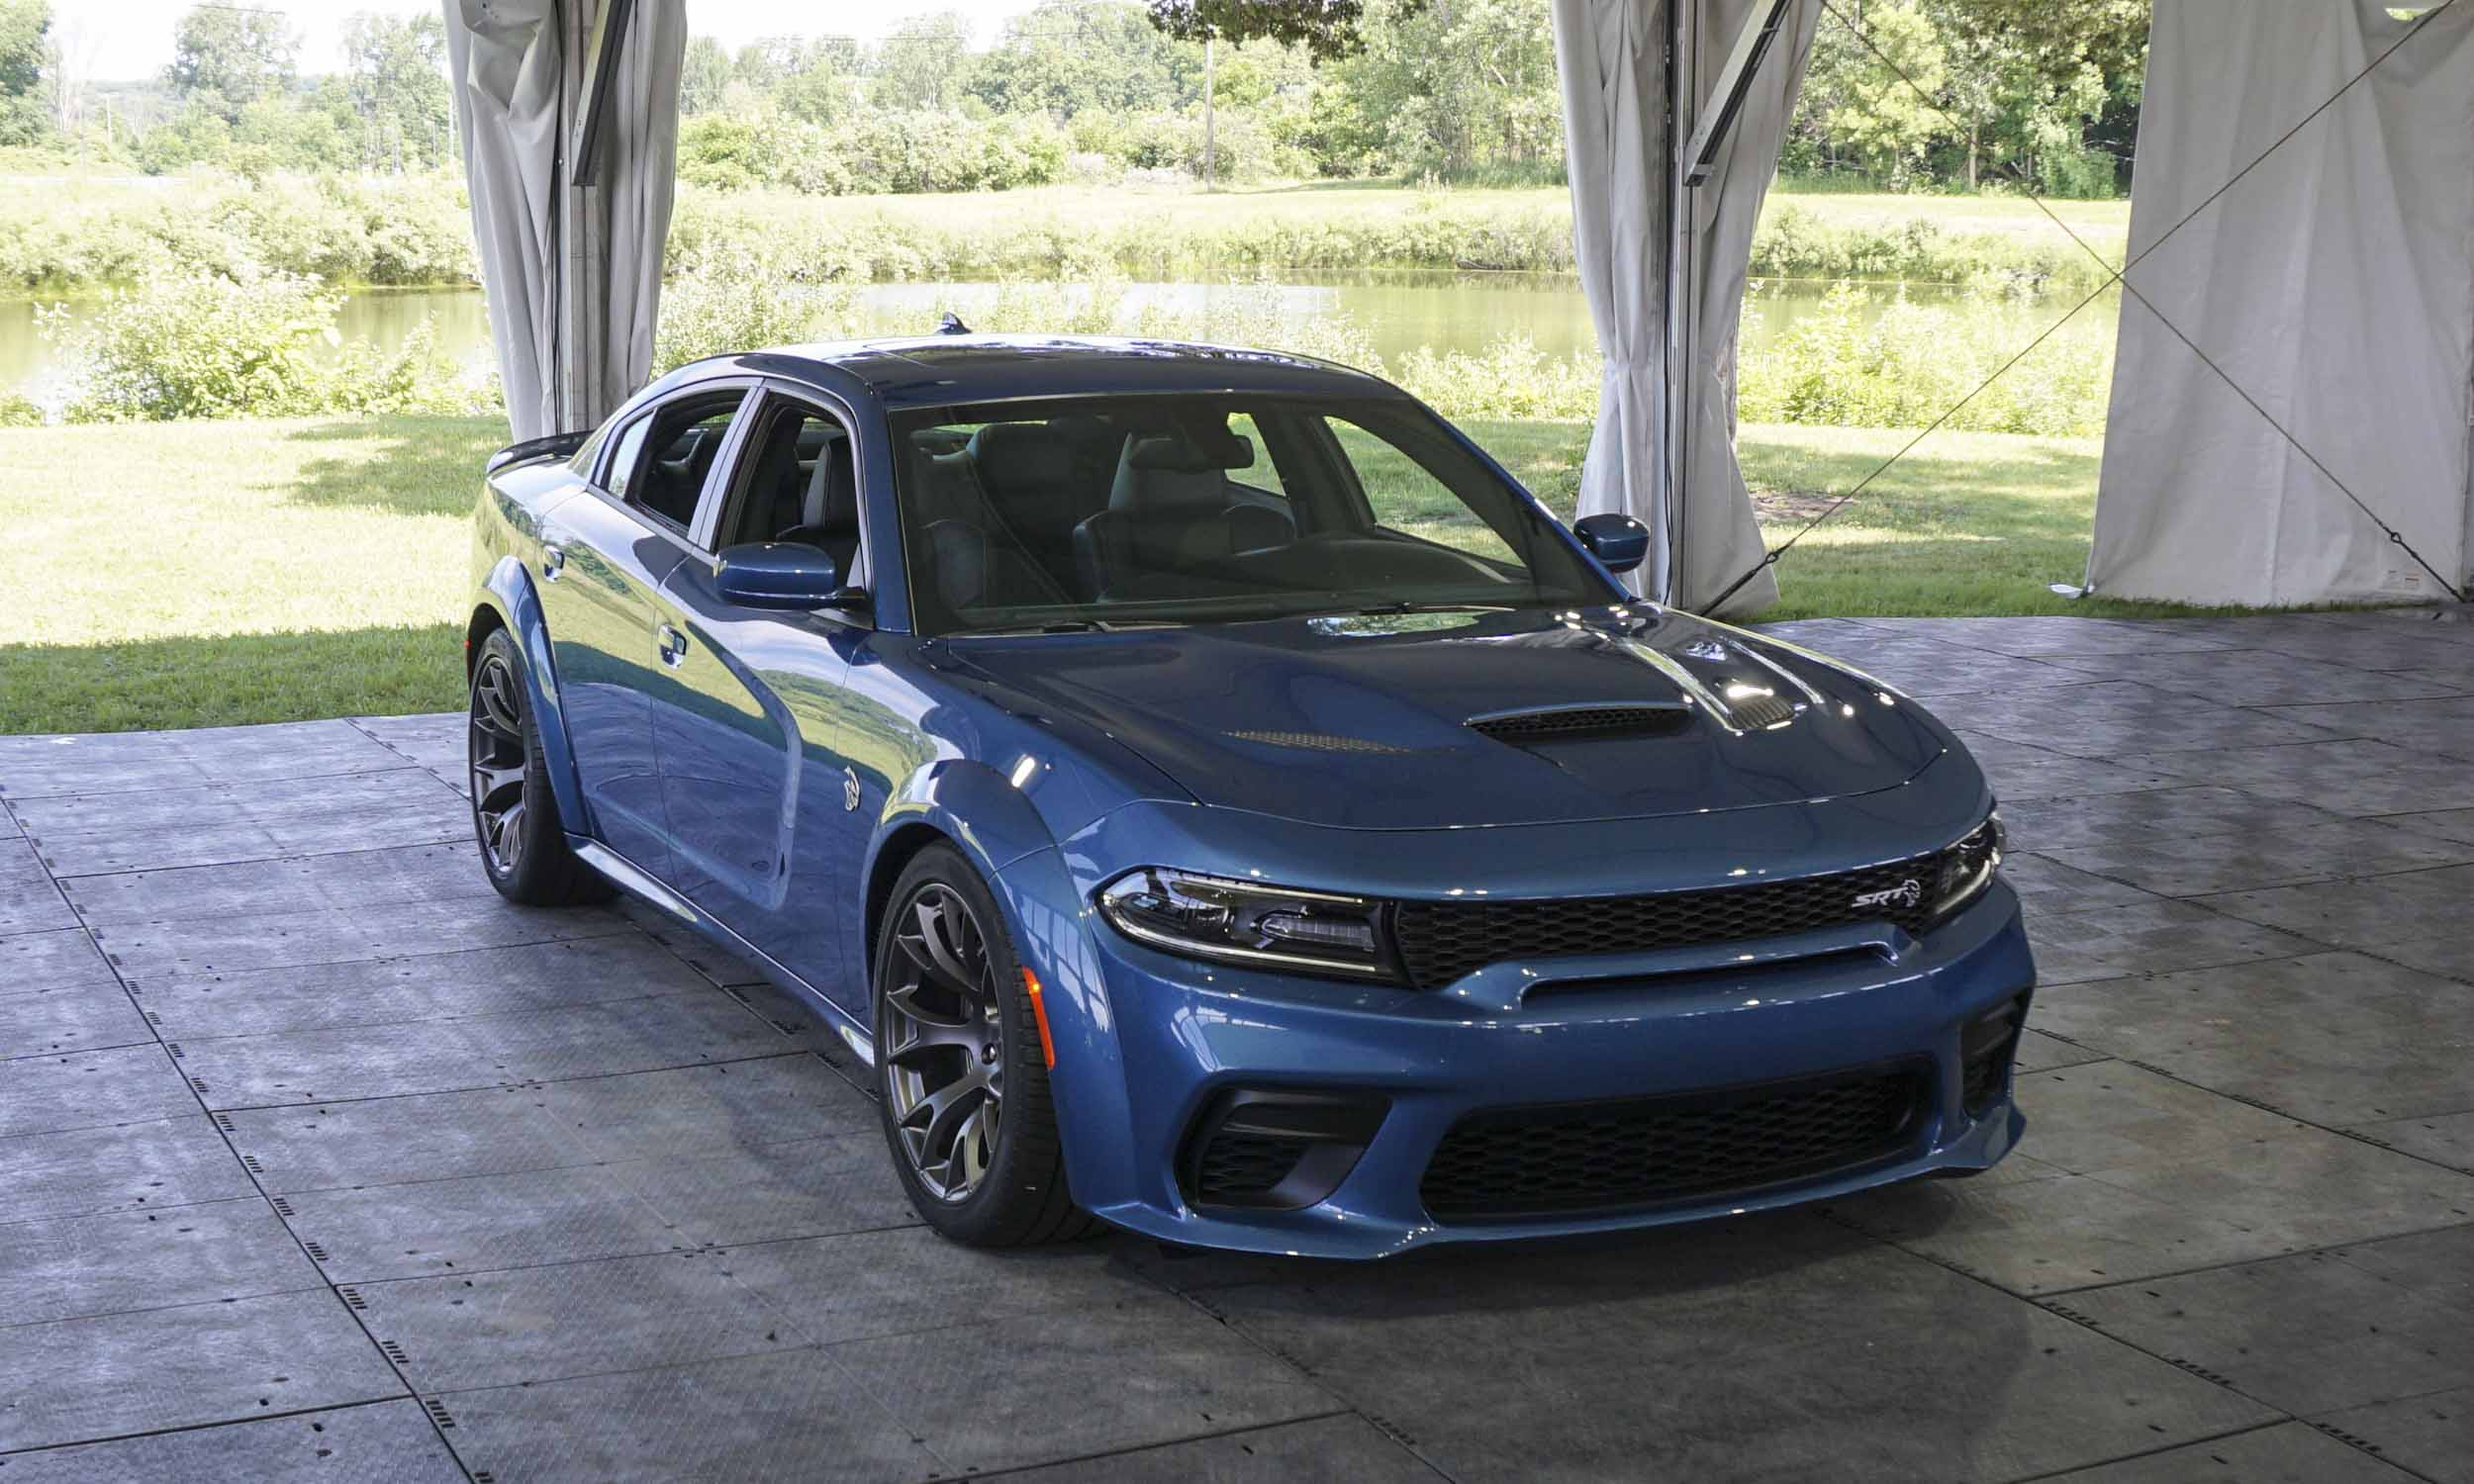 58 All New Pictures Of 2020 Dodge Charger Engine